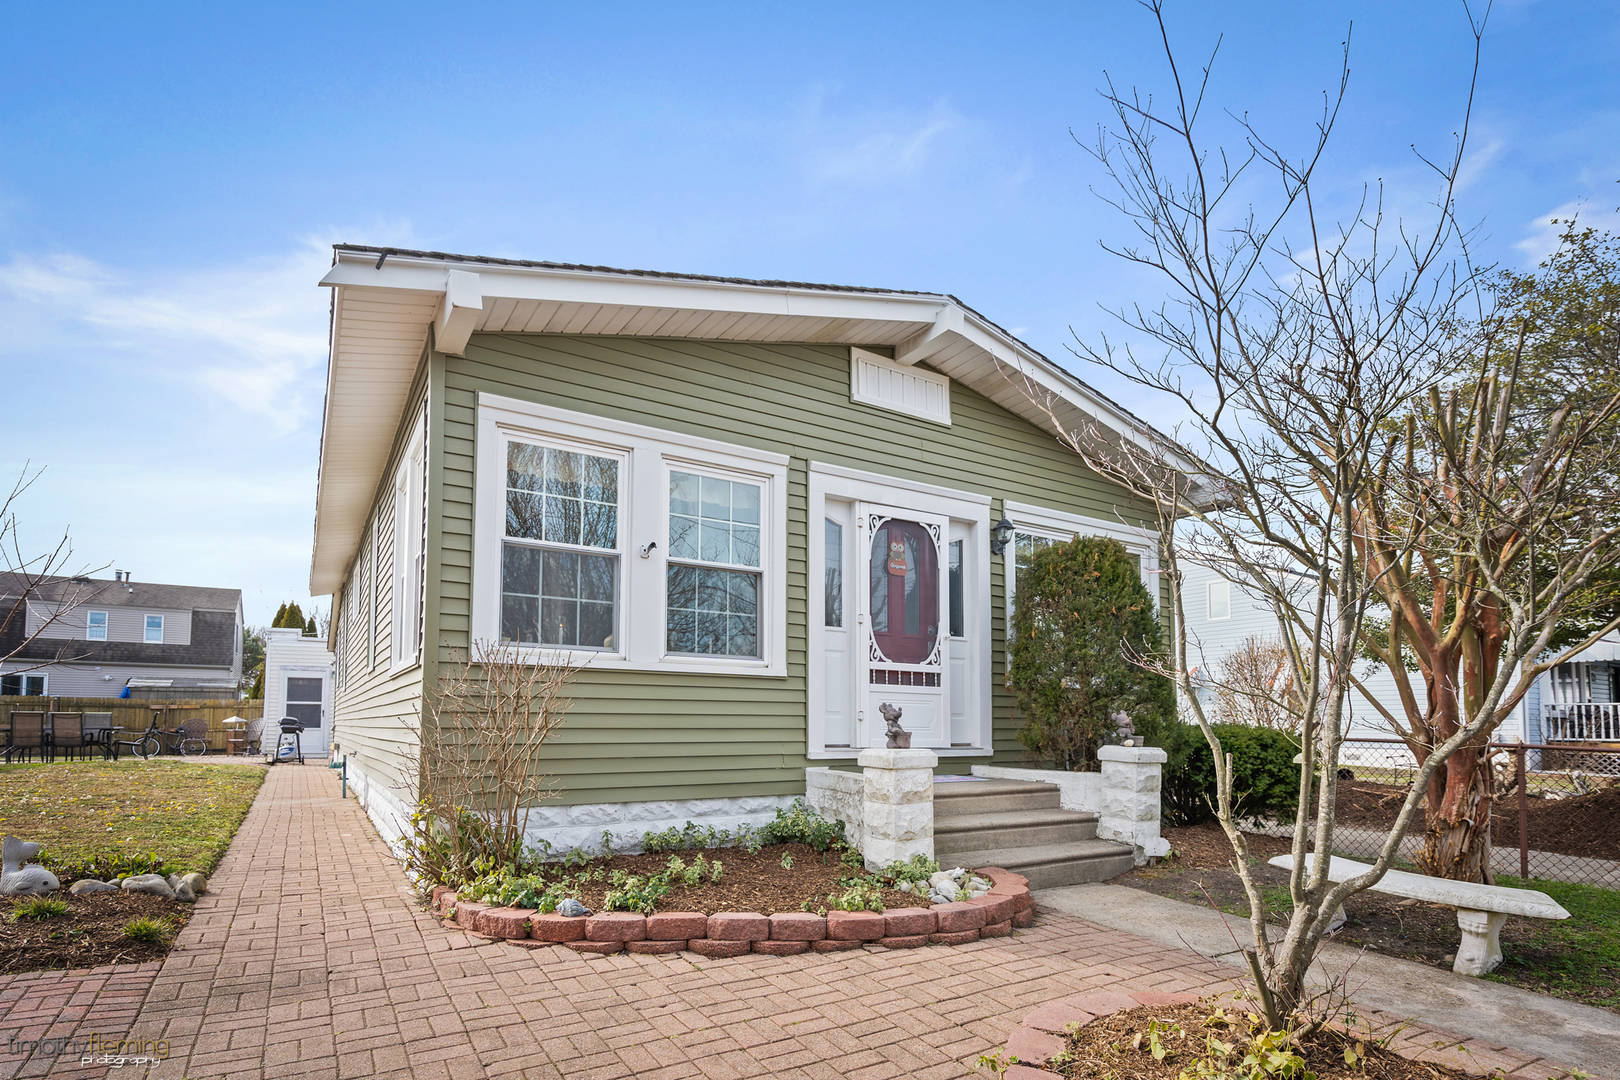 142 W Hildreth Ave Wildwood, NJ 08260